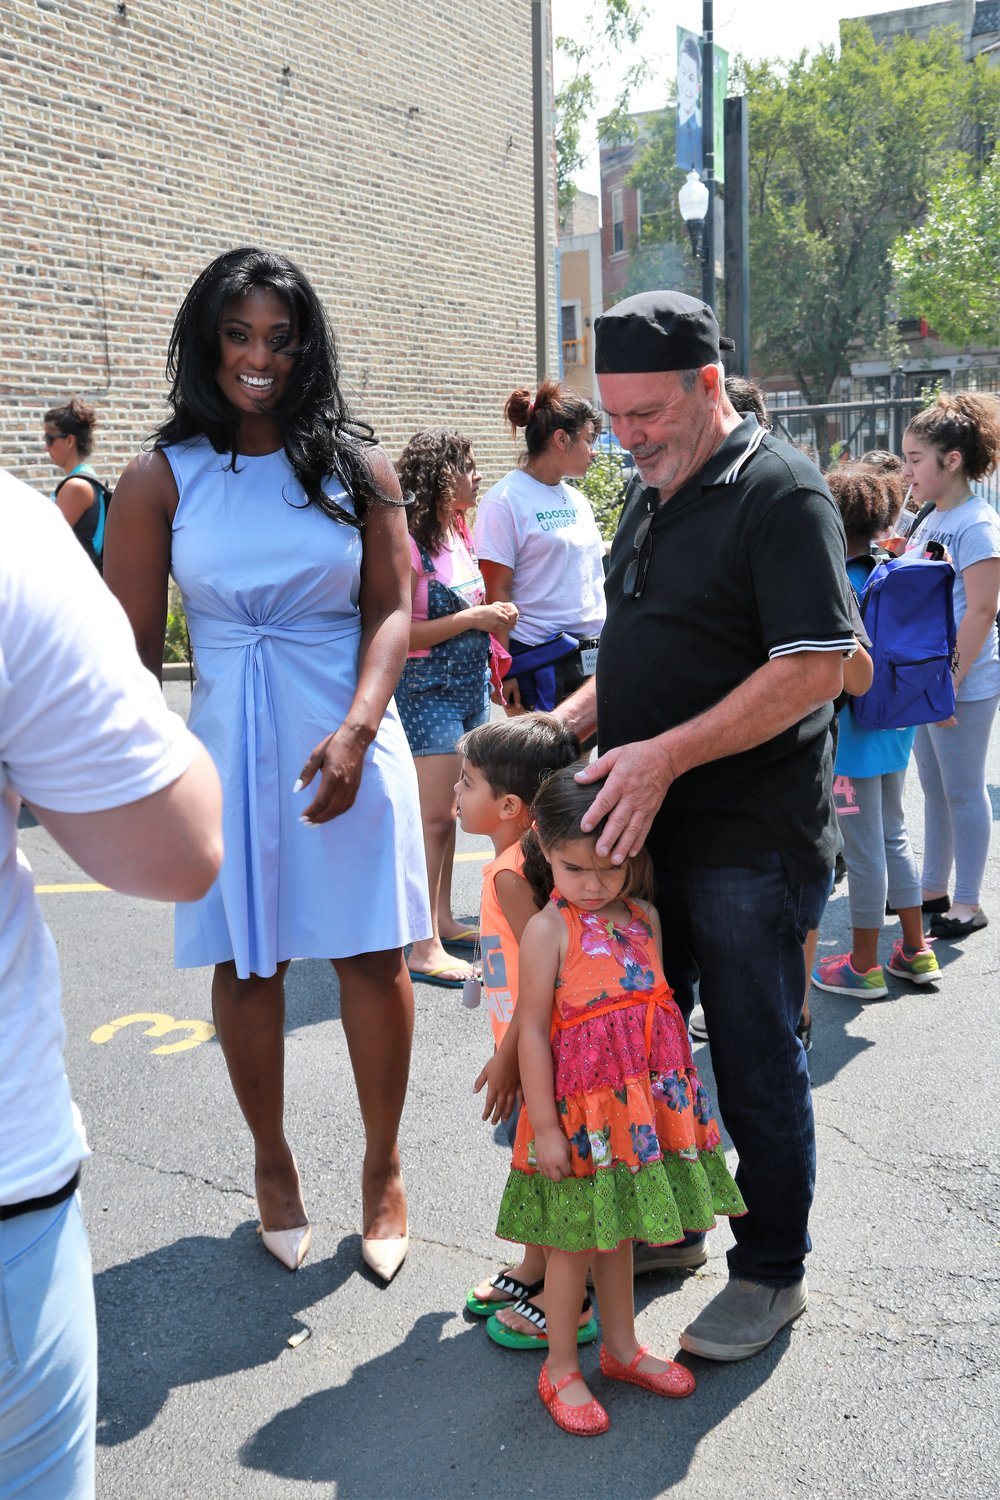 Theresa interacting with the community and neighborhood residents